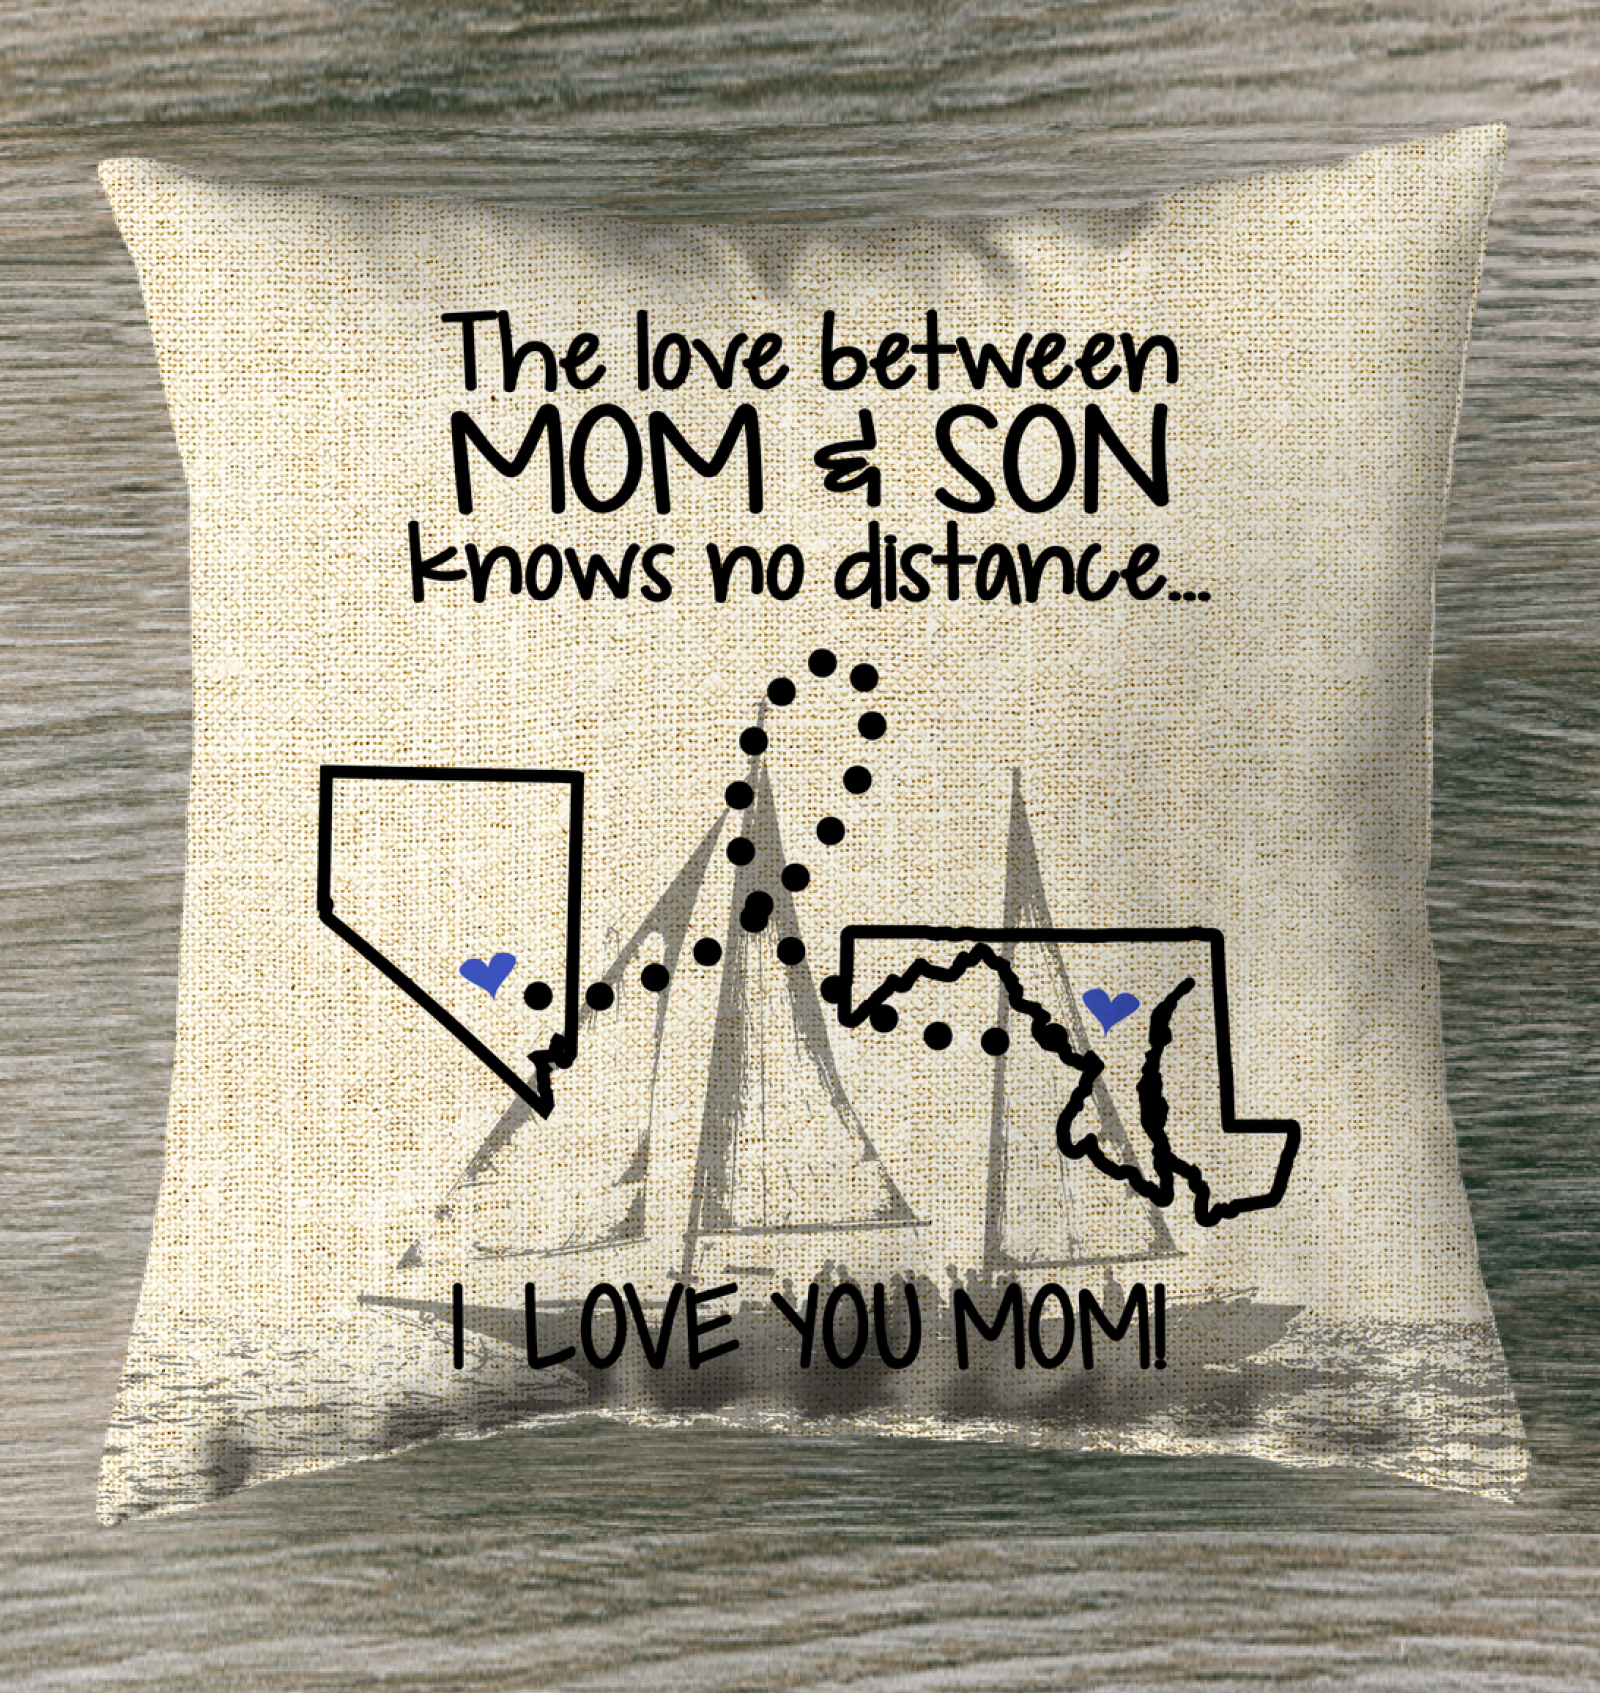 FLORIDA NEVADA THE LOVE MOM AND SON KNOWS NO DISTANCE